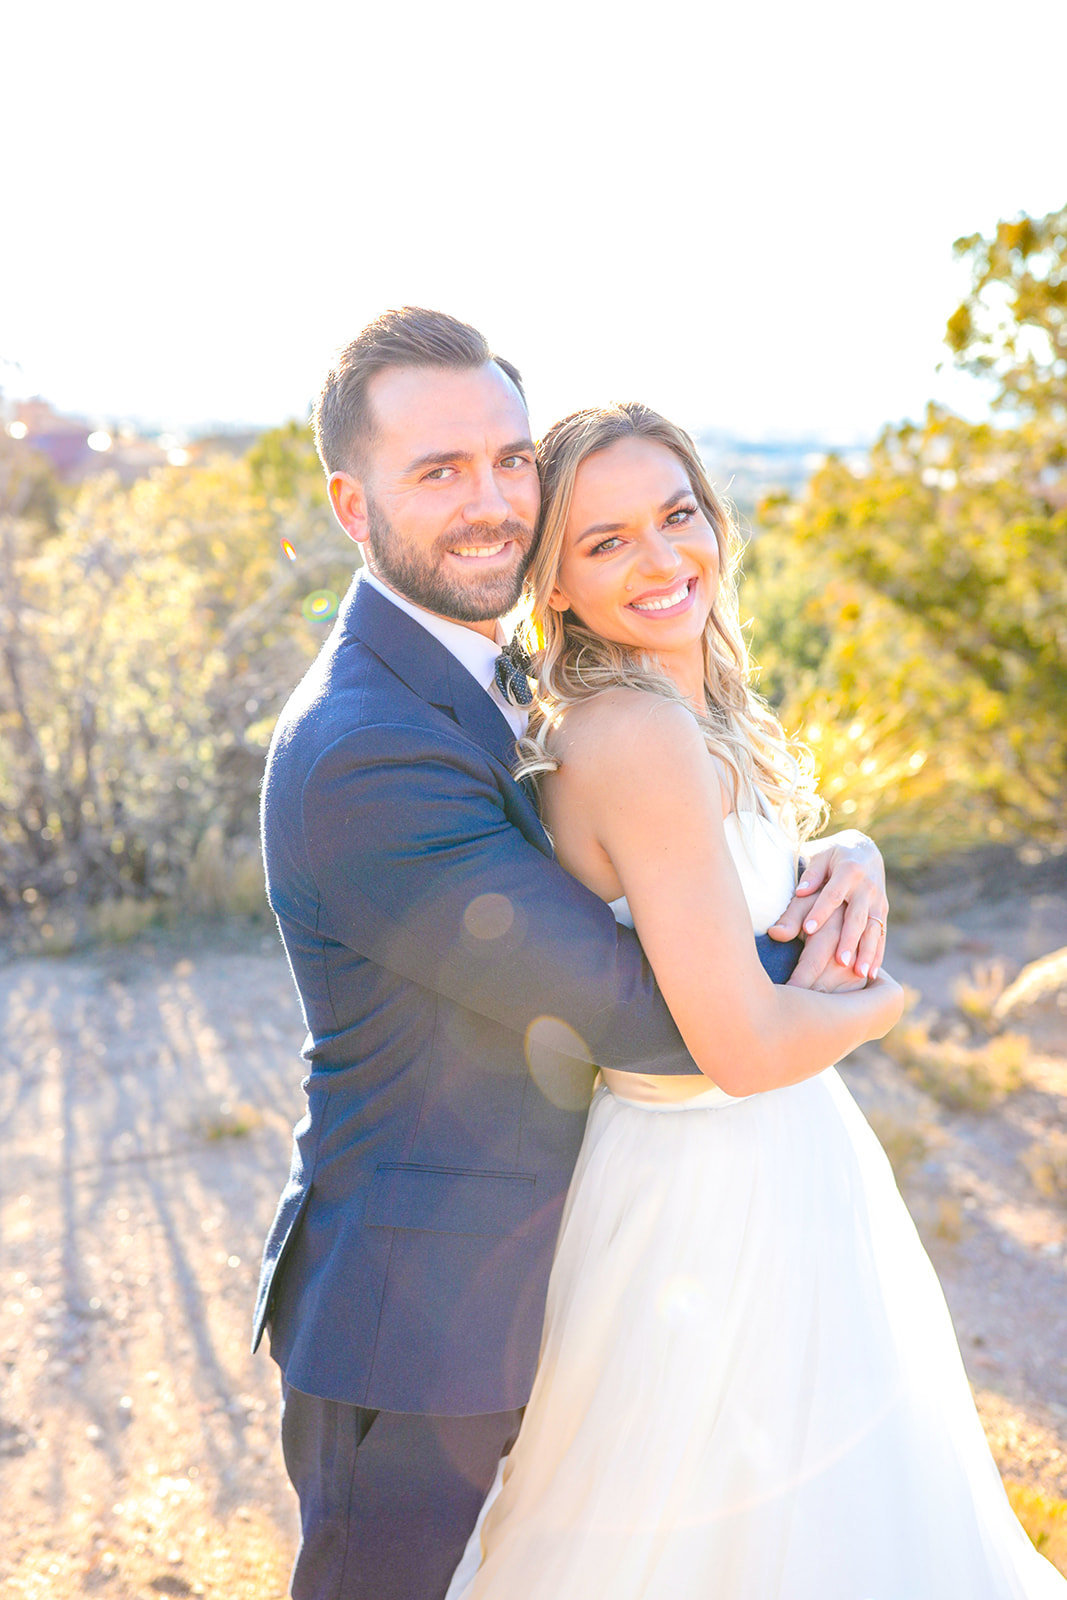 Albuquerque Wedding Photographers_www.tylerbrooke.com_Kate Kauffman_015